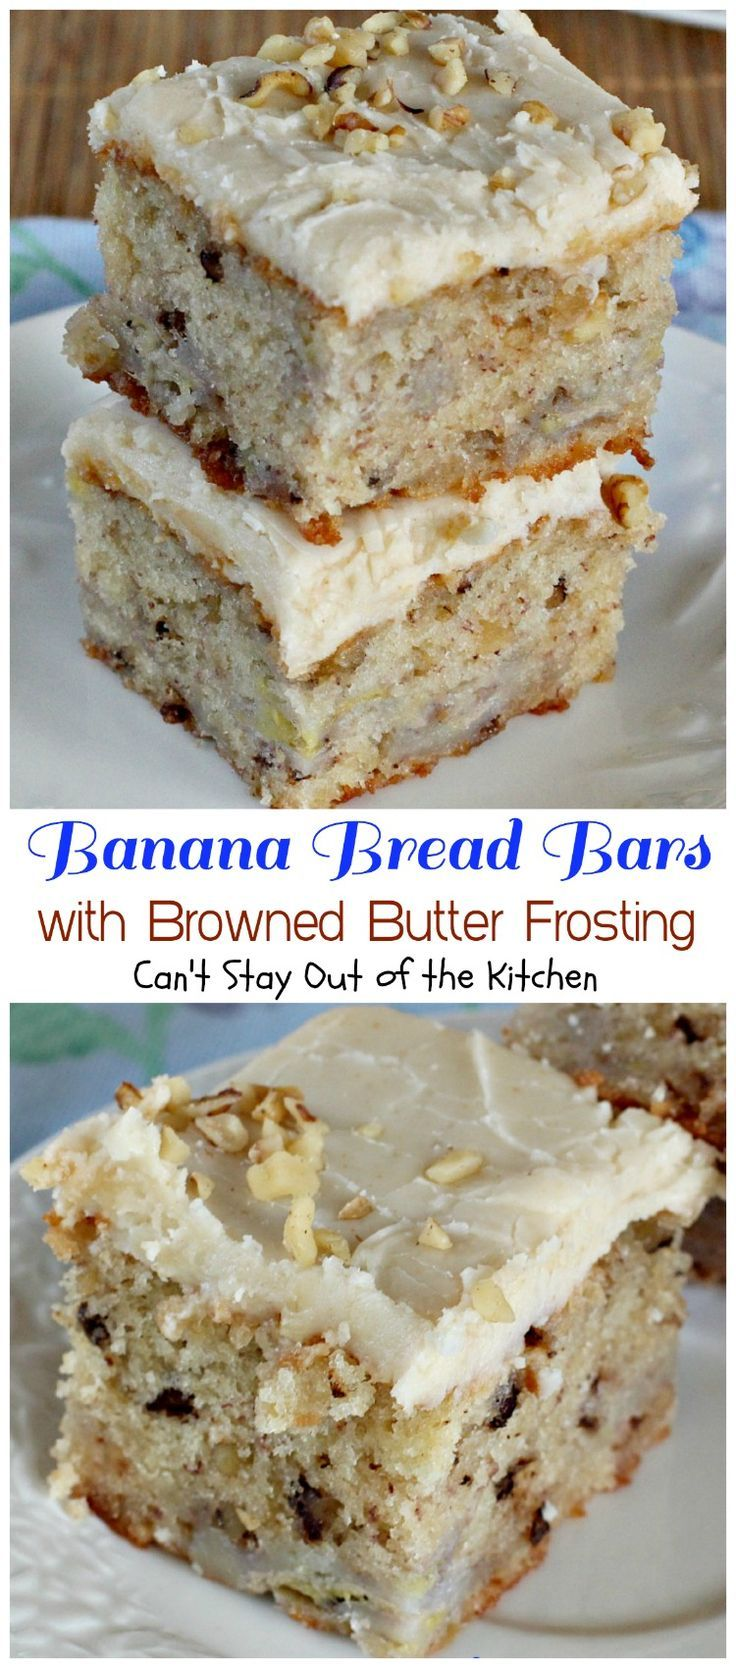 Banana Bread Bars with Browned Butter Frosting | Can't Stay Out of the Kitchen…